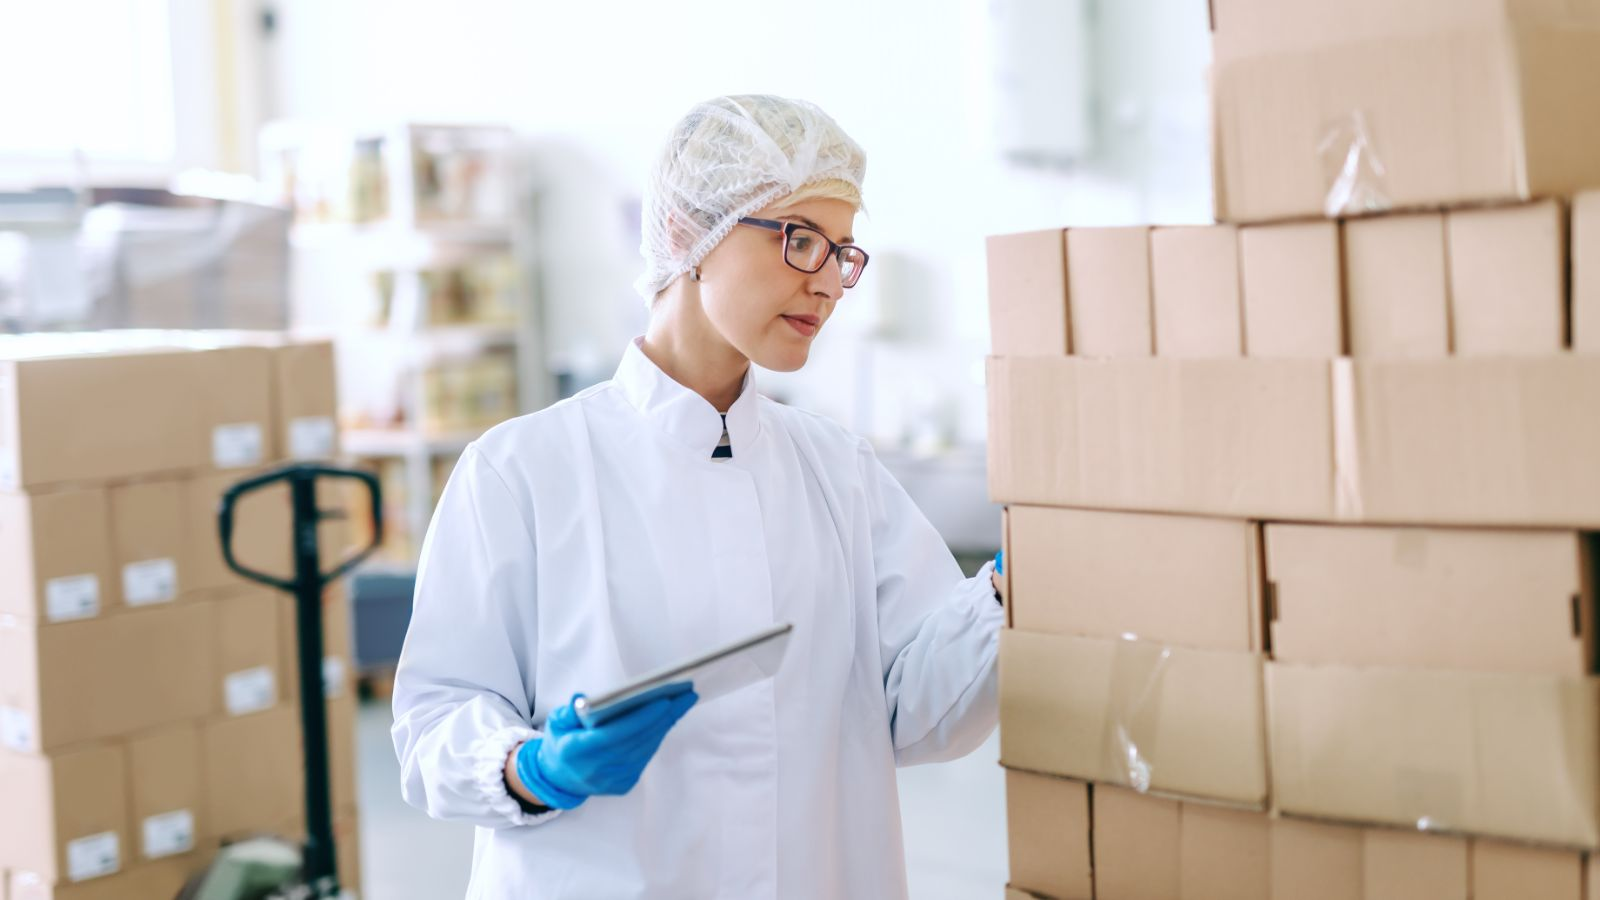 Worker quality checking boxes of stock